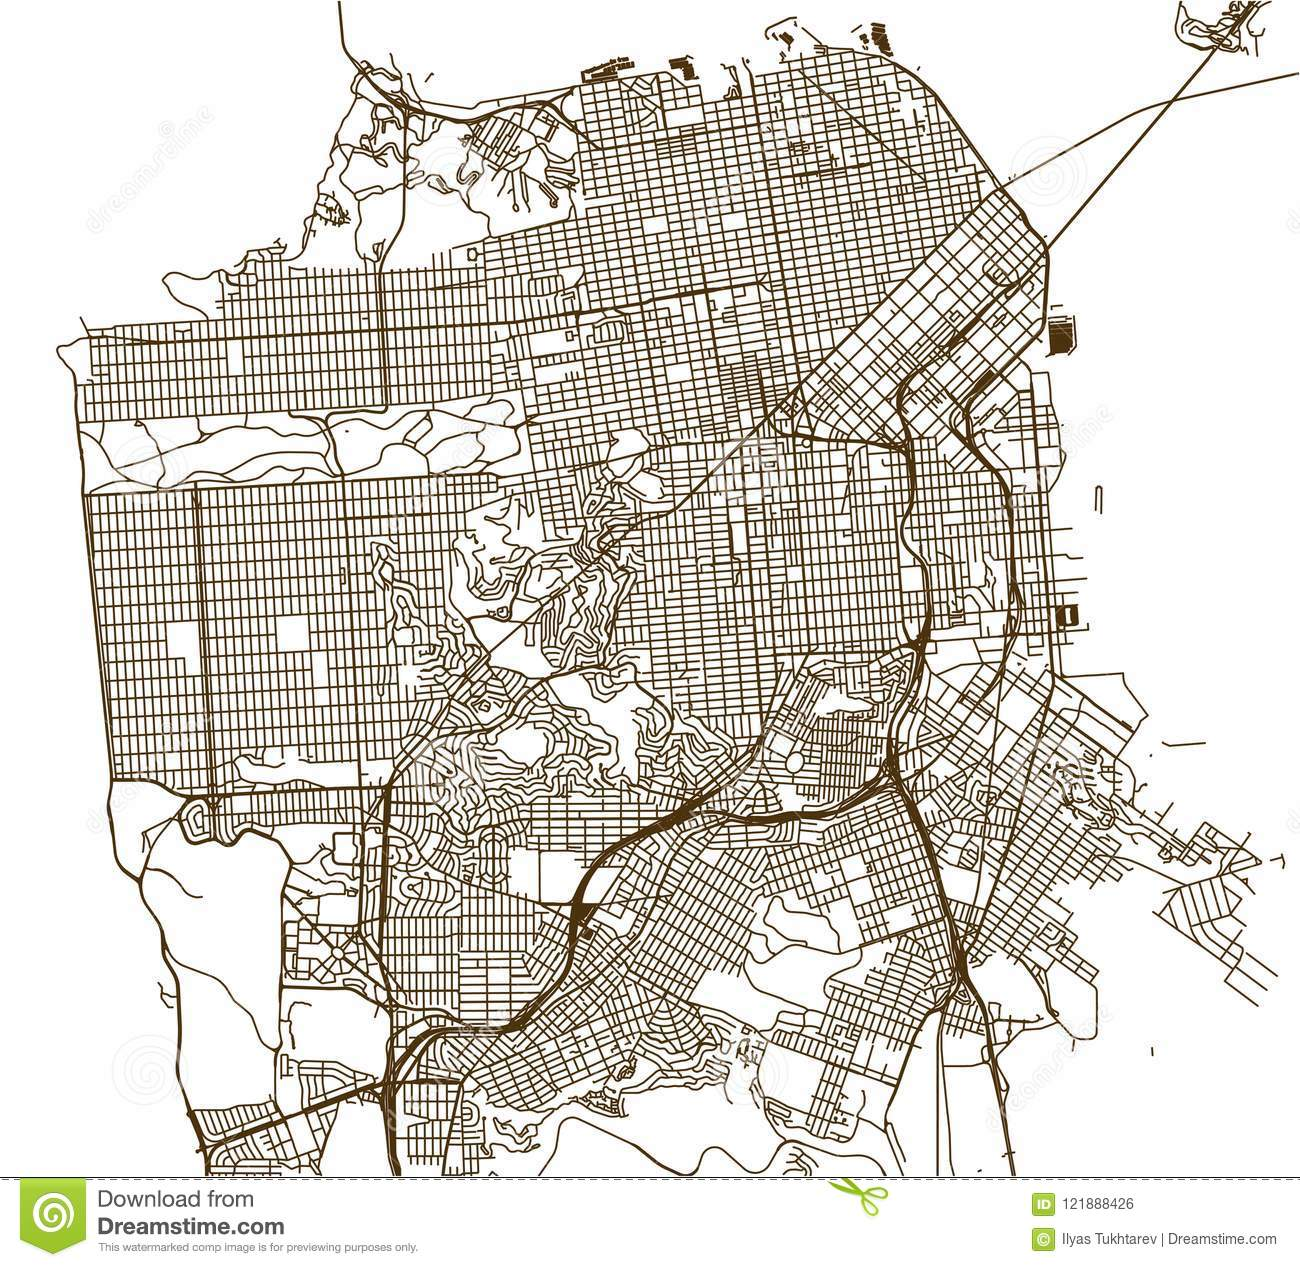 Map Of The City Of San Francisco, USA Stock Vector ... San Fransisco Usa Map on richmond map, detroit map, nashville map, stockton map, las vegas map, miami map, pittsburgh map, tokyo map, new orleans map, atlanta map, omaha map, sutter street sf map, los angeles map, santa rosa map, indianapolis map, salt lake city map, california map, cincinnati map, boston map, london map,